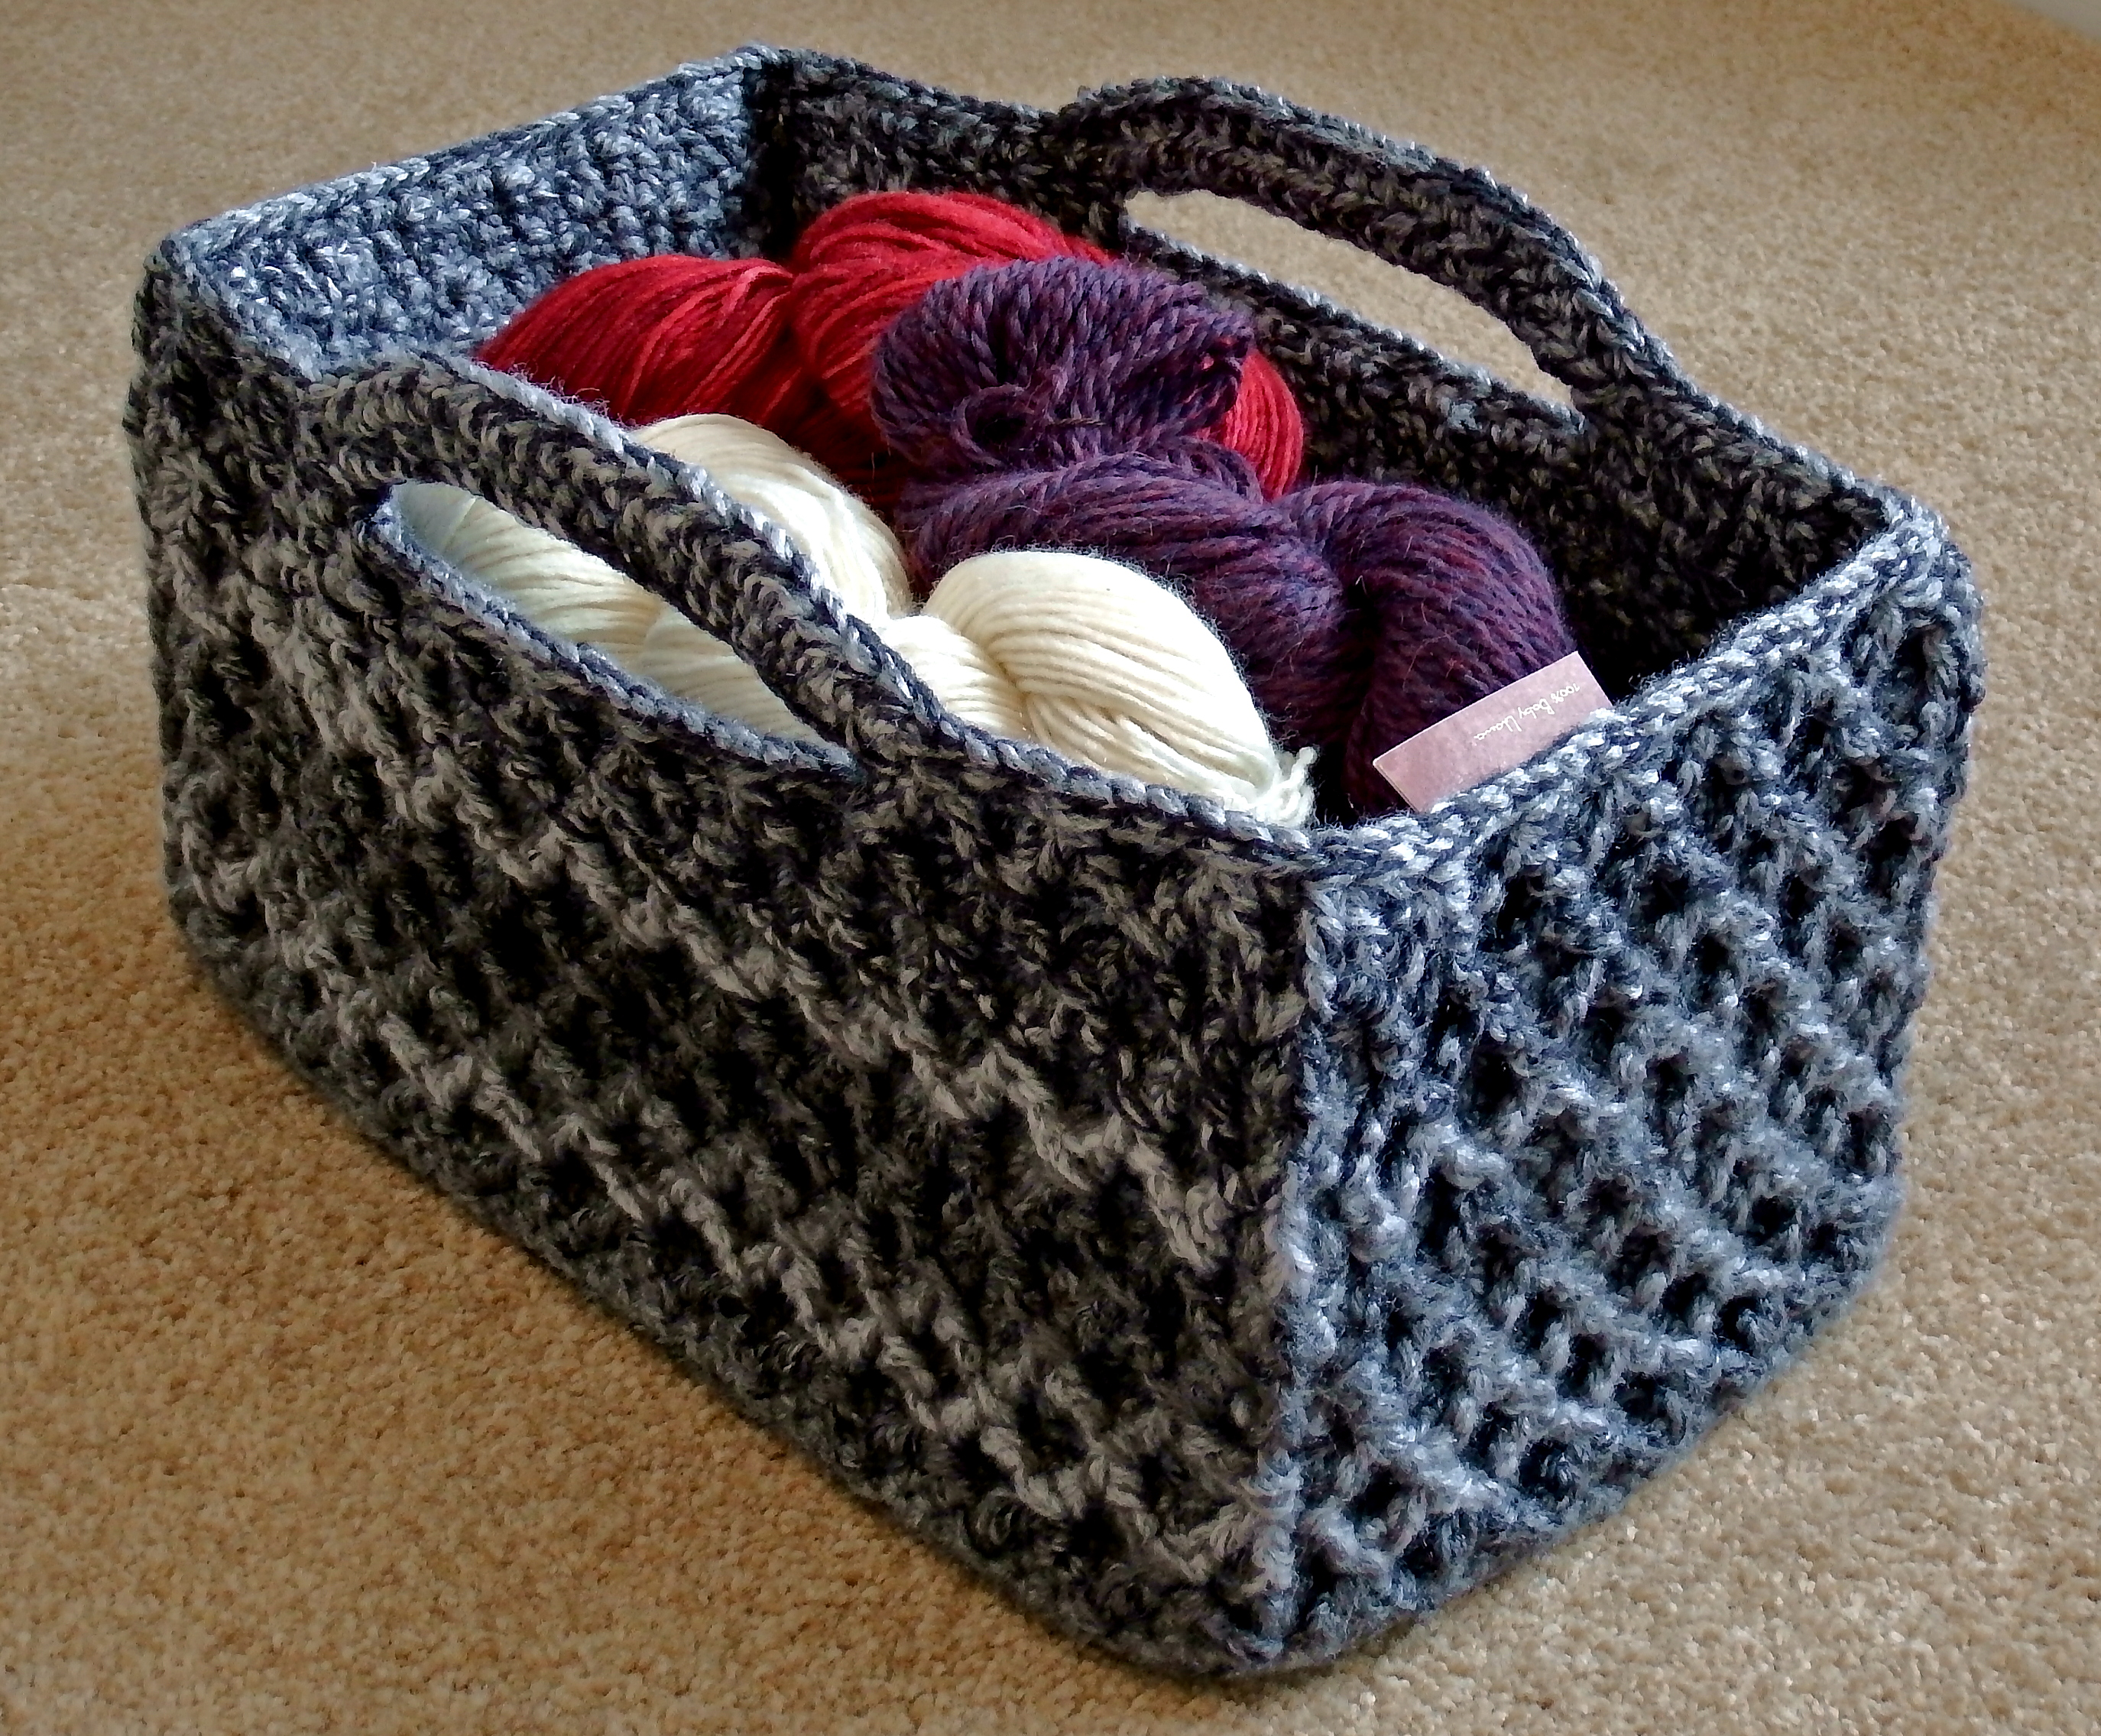 Crochet Stitches Basket : ... Basket - Free customisable crochet pattern with video stitch tutorial